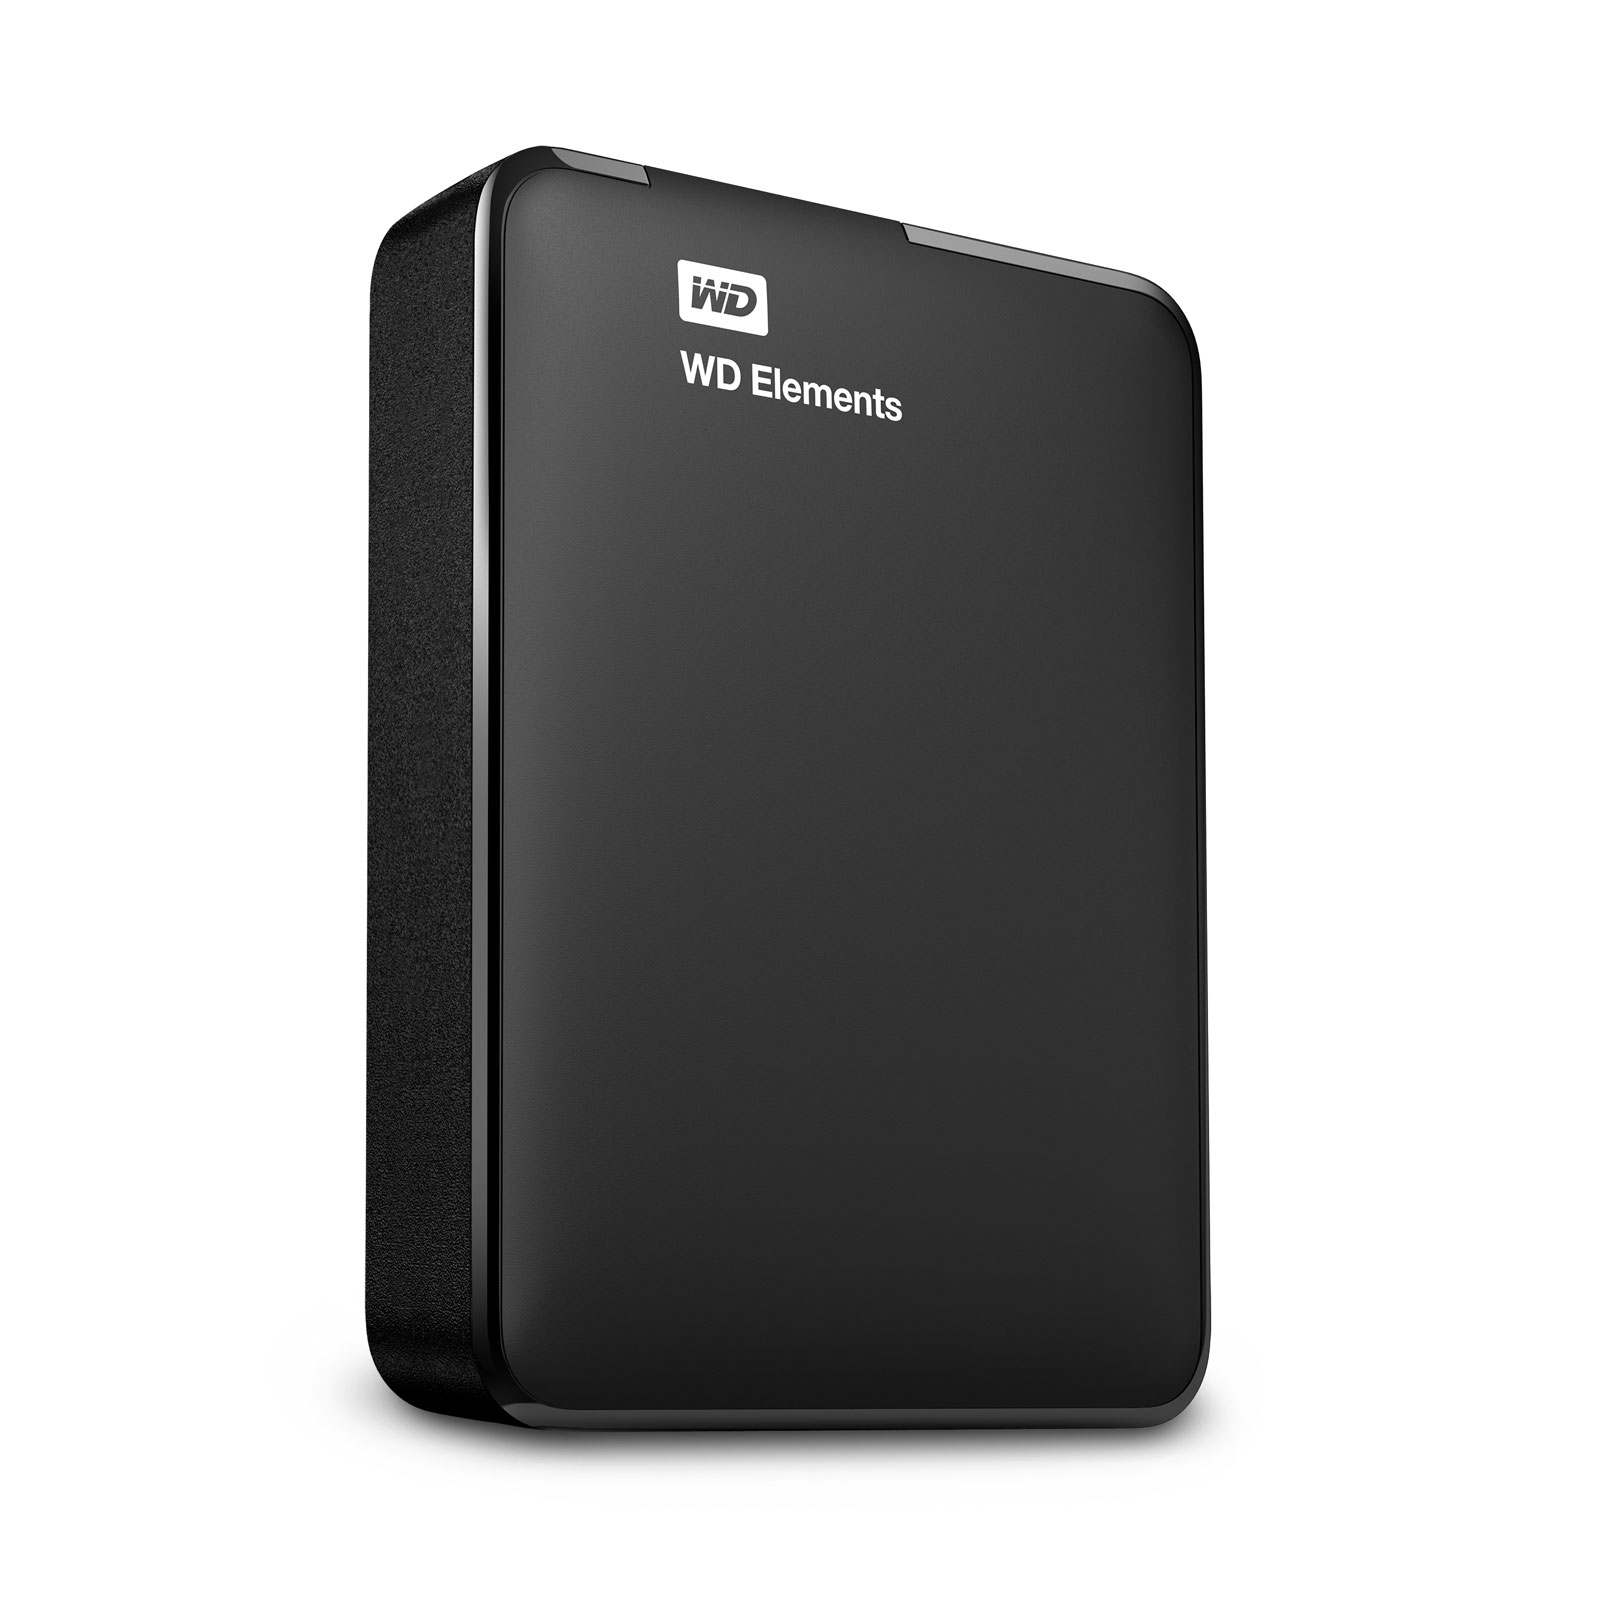 wd elements portable 2 to noir usb 3 0 disque dur externe western digital sur. Black Bedroom Furniture Sets. Home Design Ideas